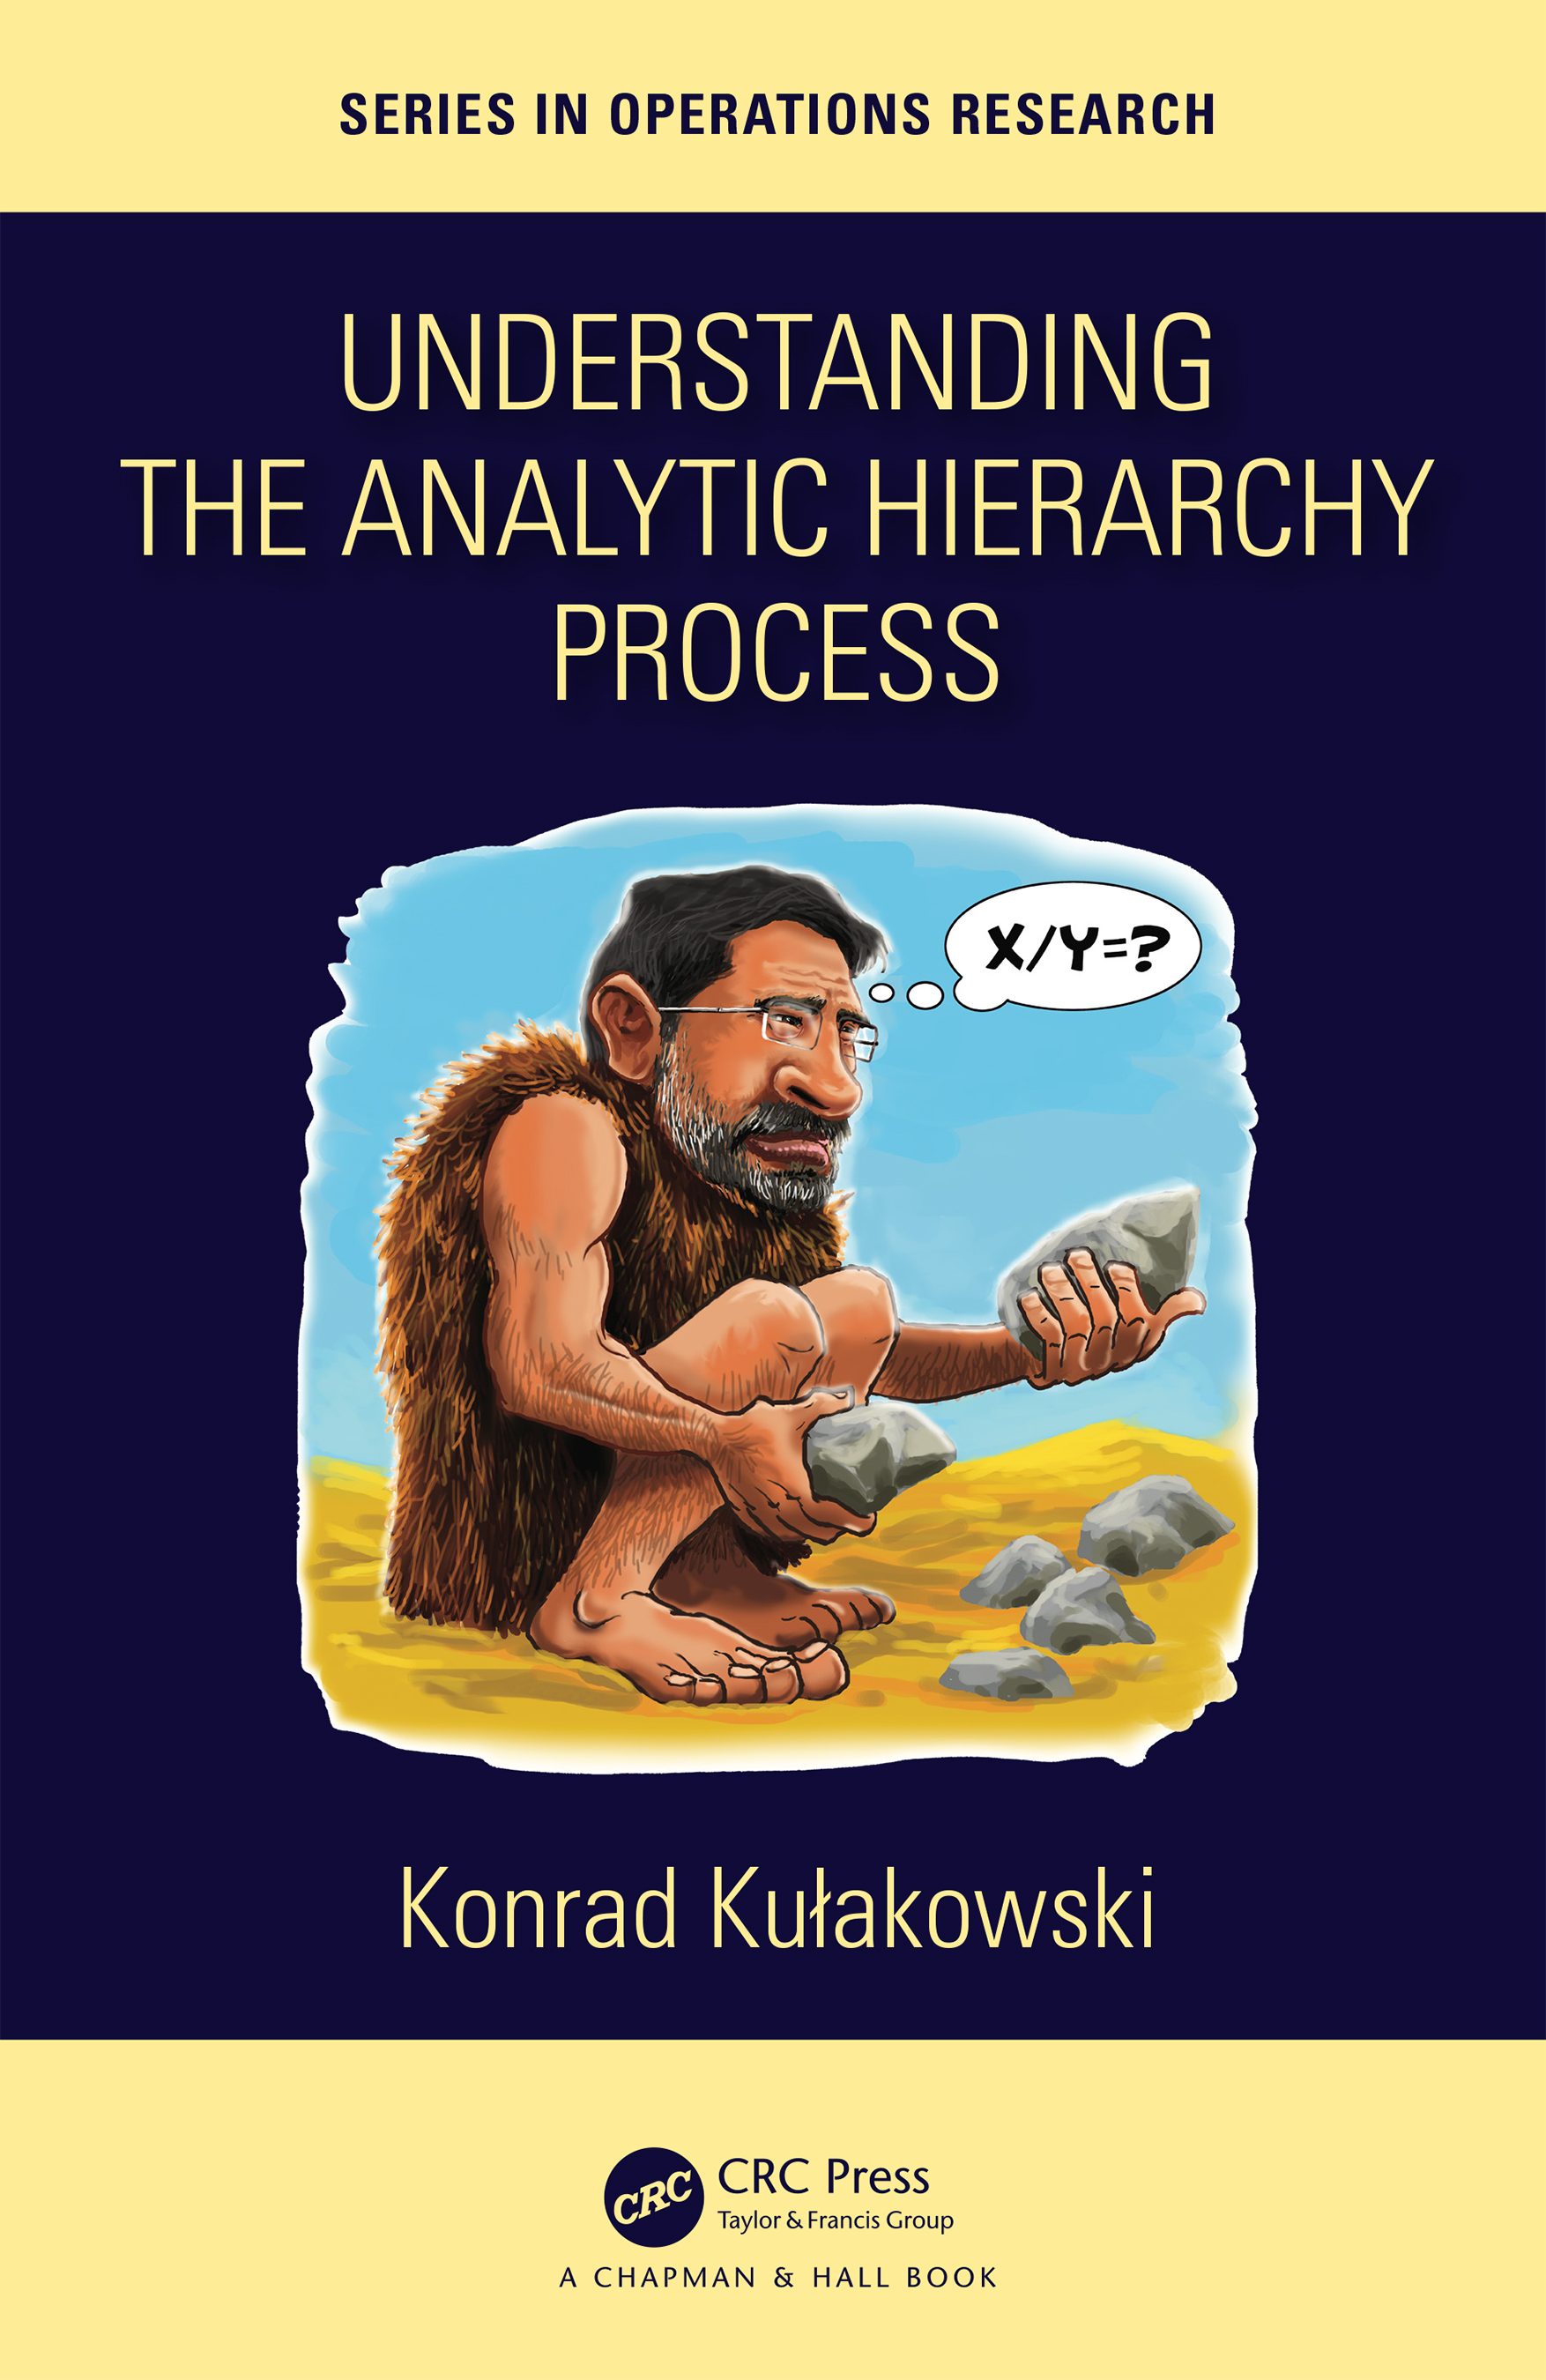 Understanding the Analytic Hierarchy Process